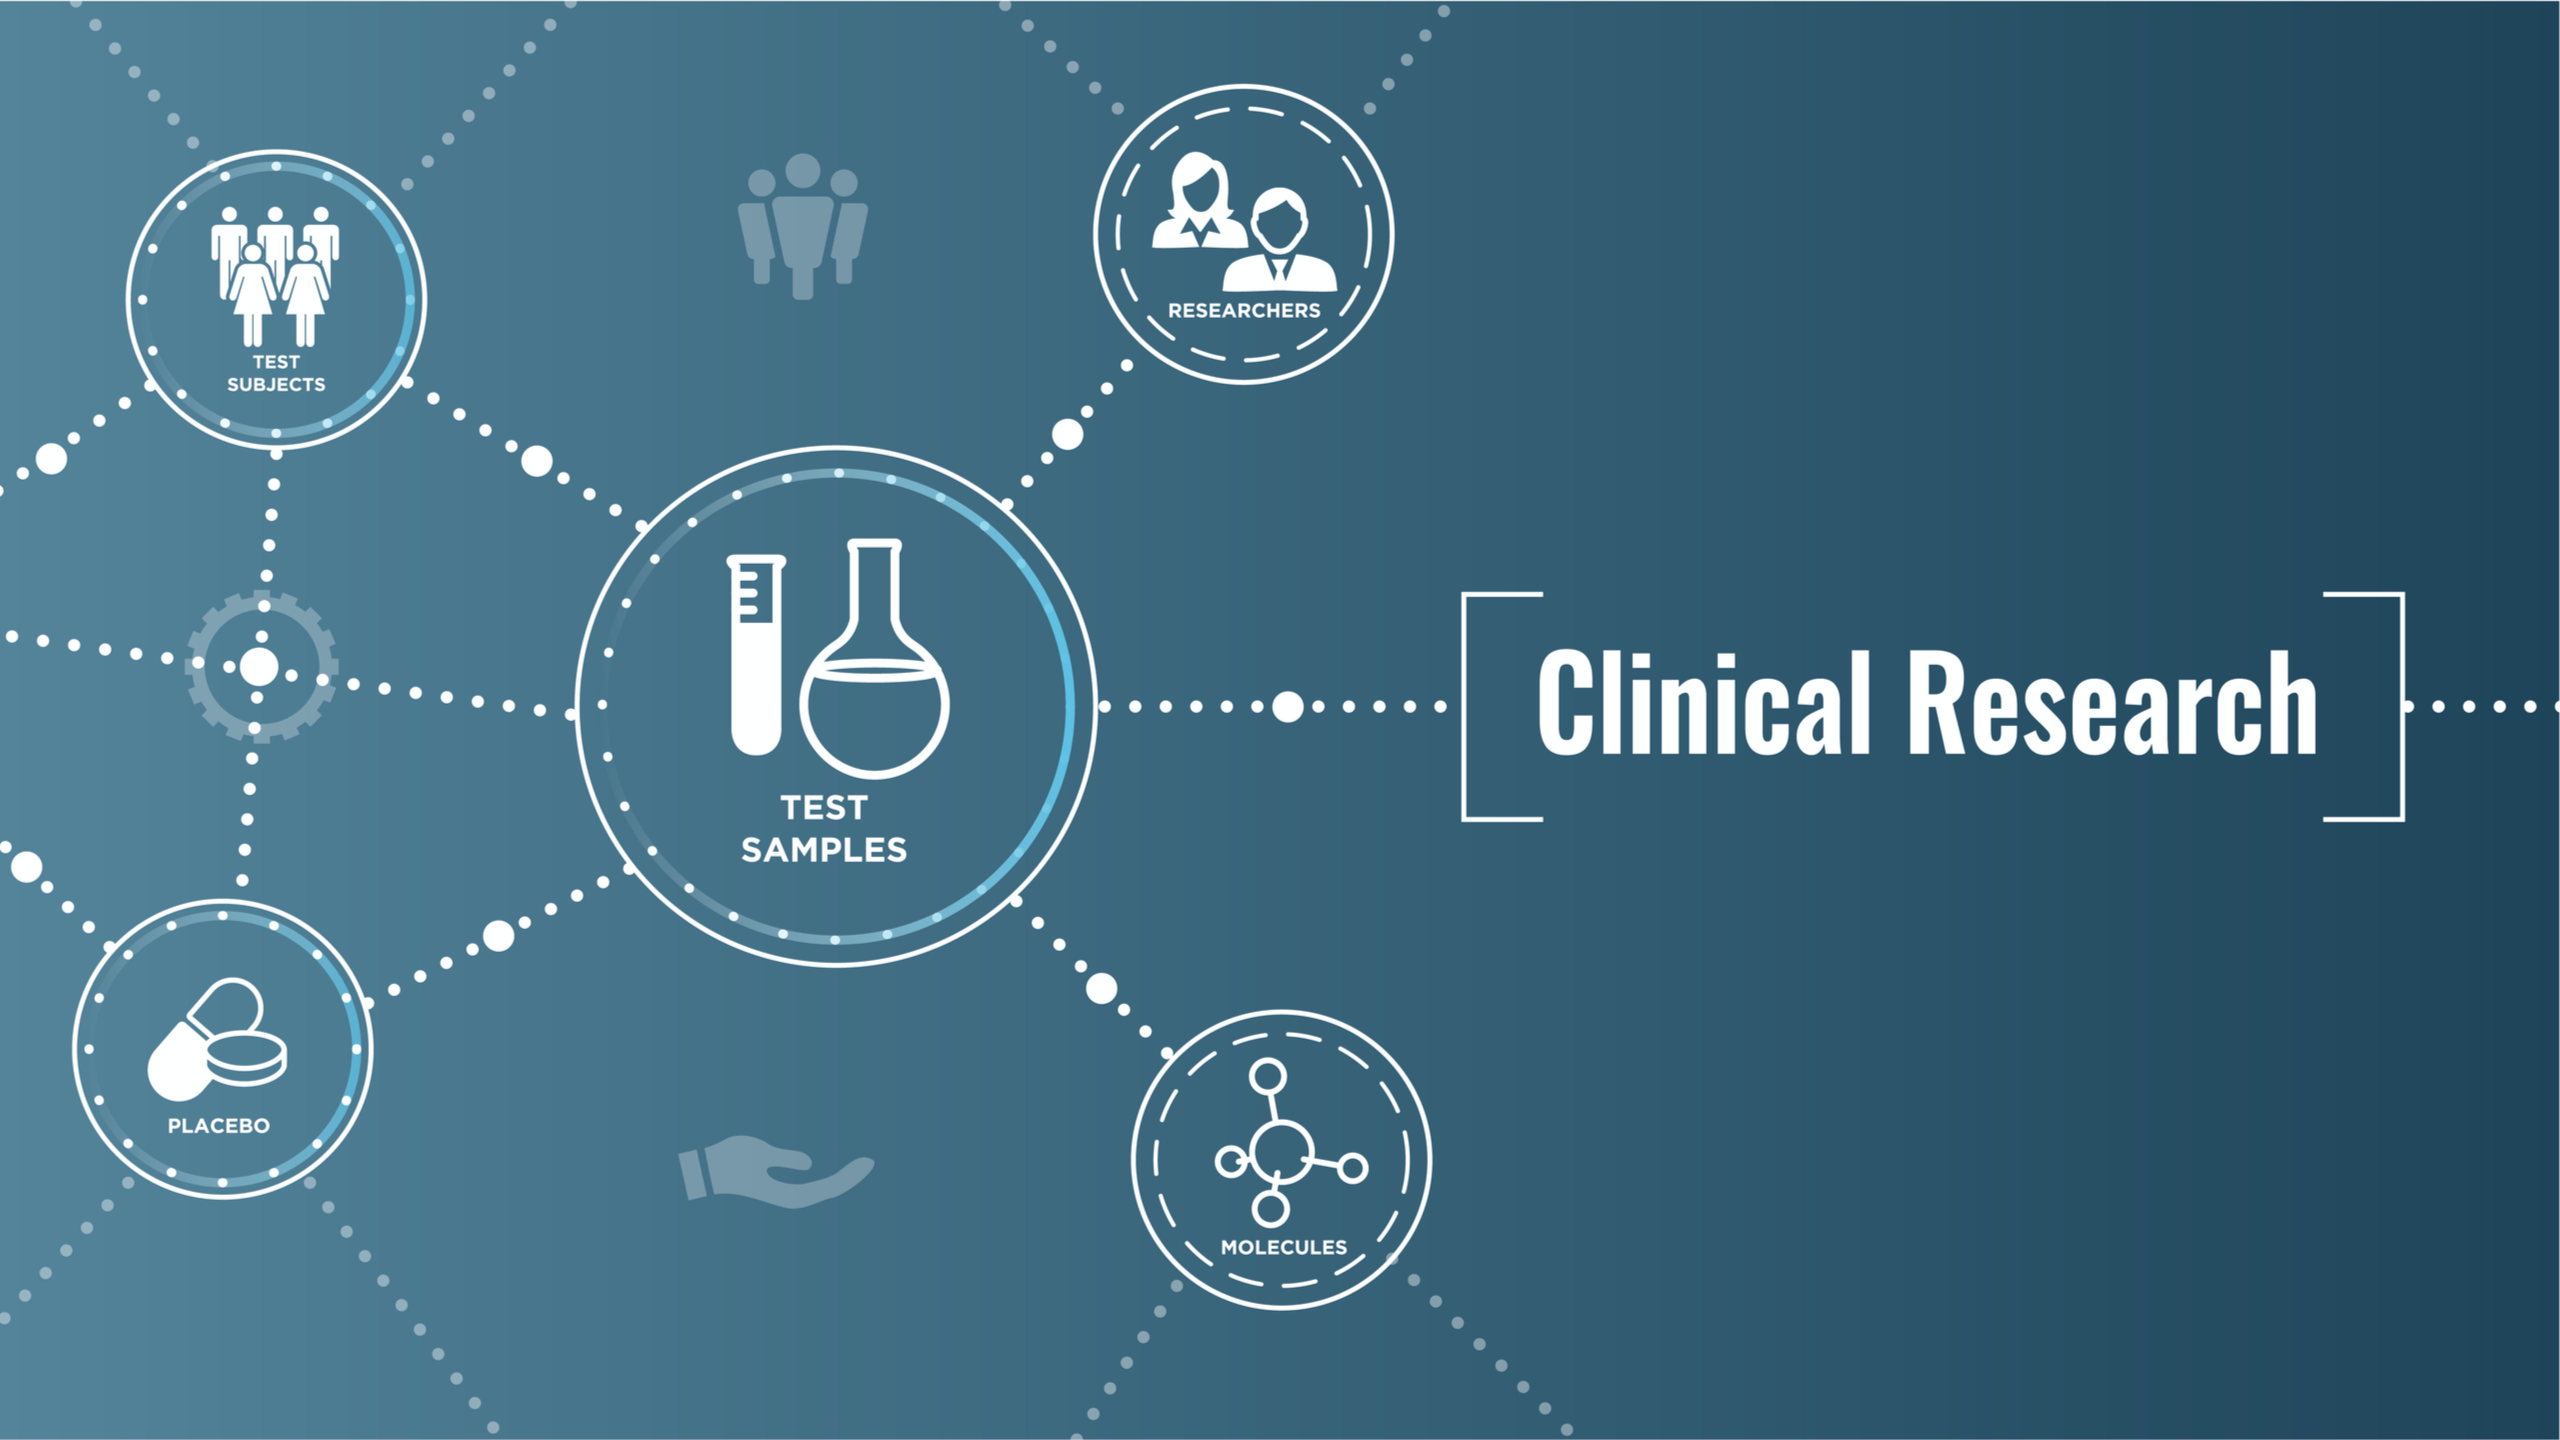 Clinicial Research COVID19 Statement